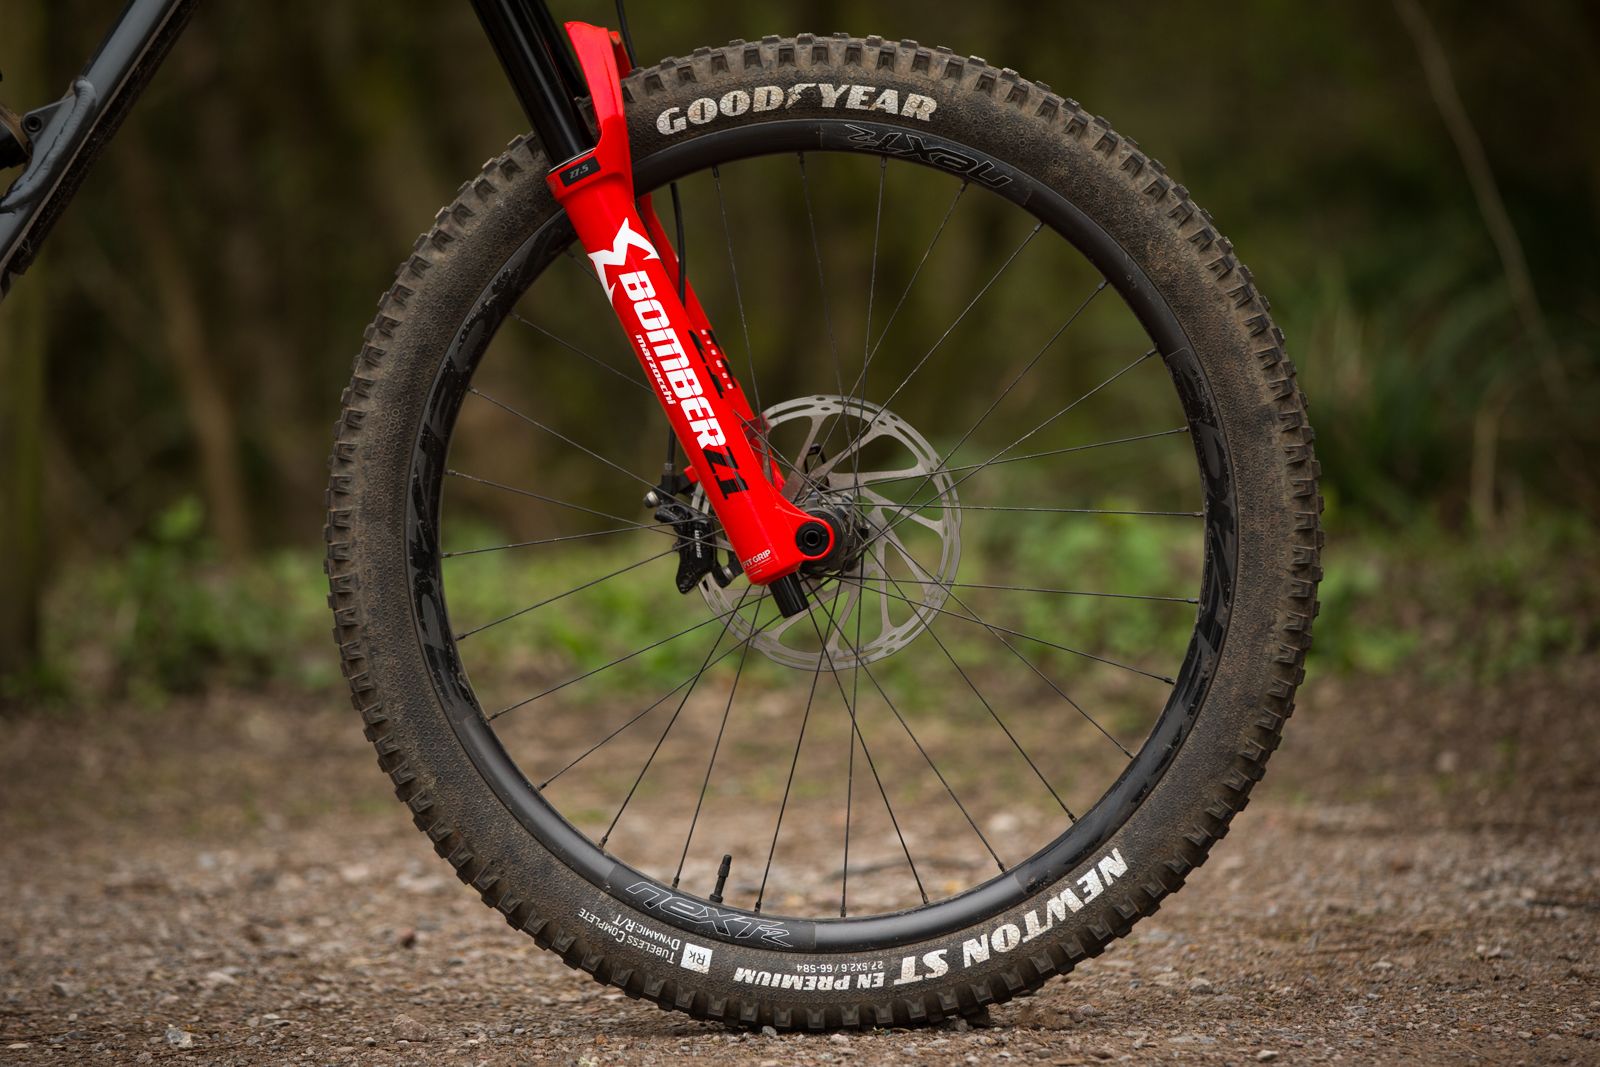 Marzocchi Z1 Bomber Suspension Fork Review (5)